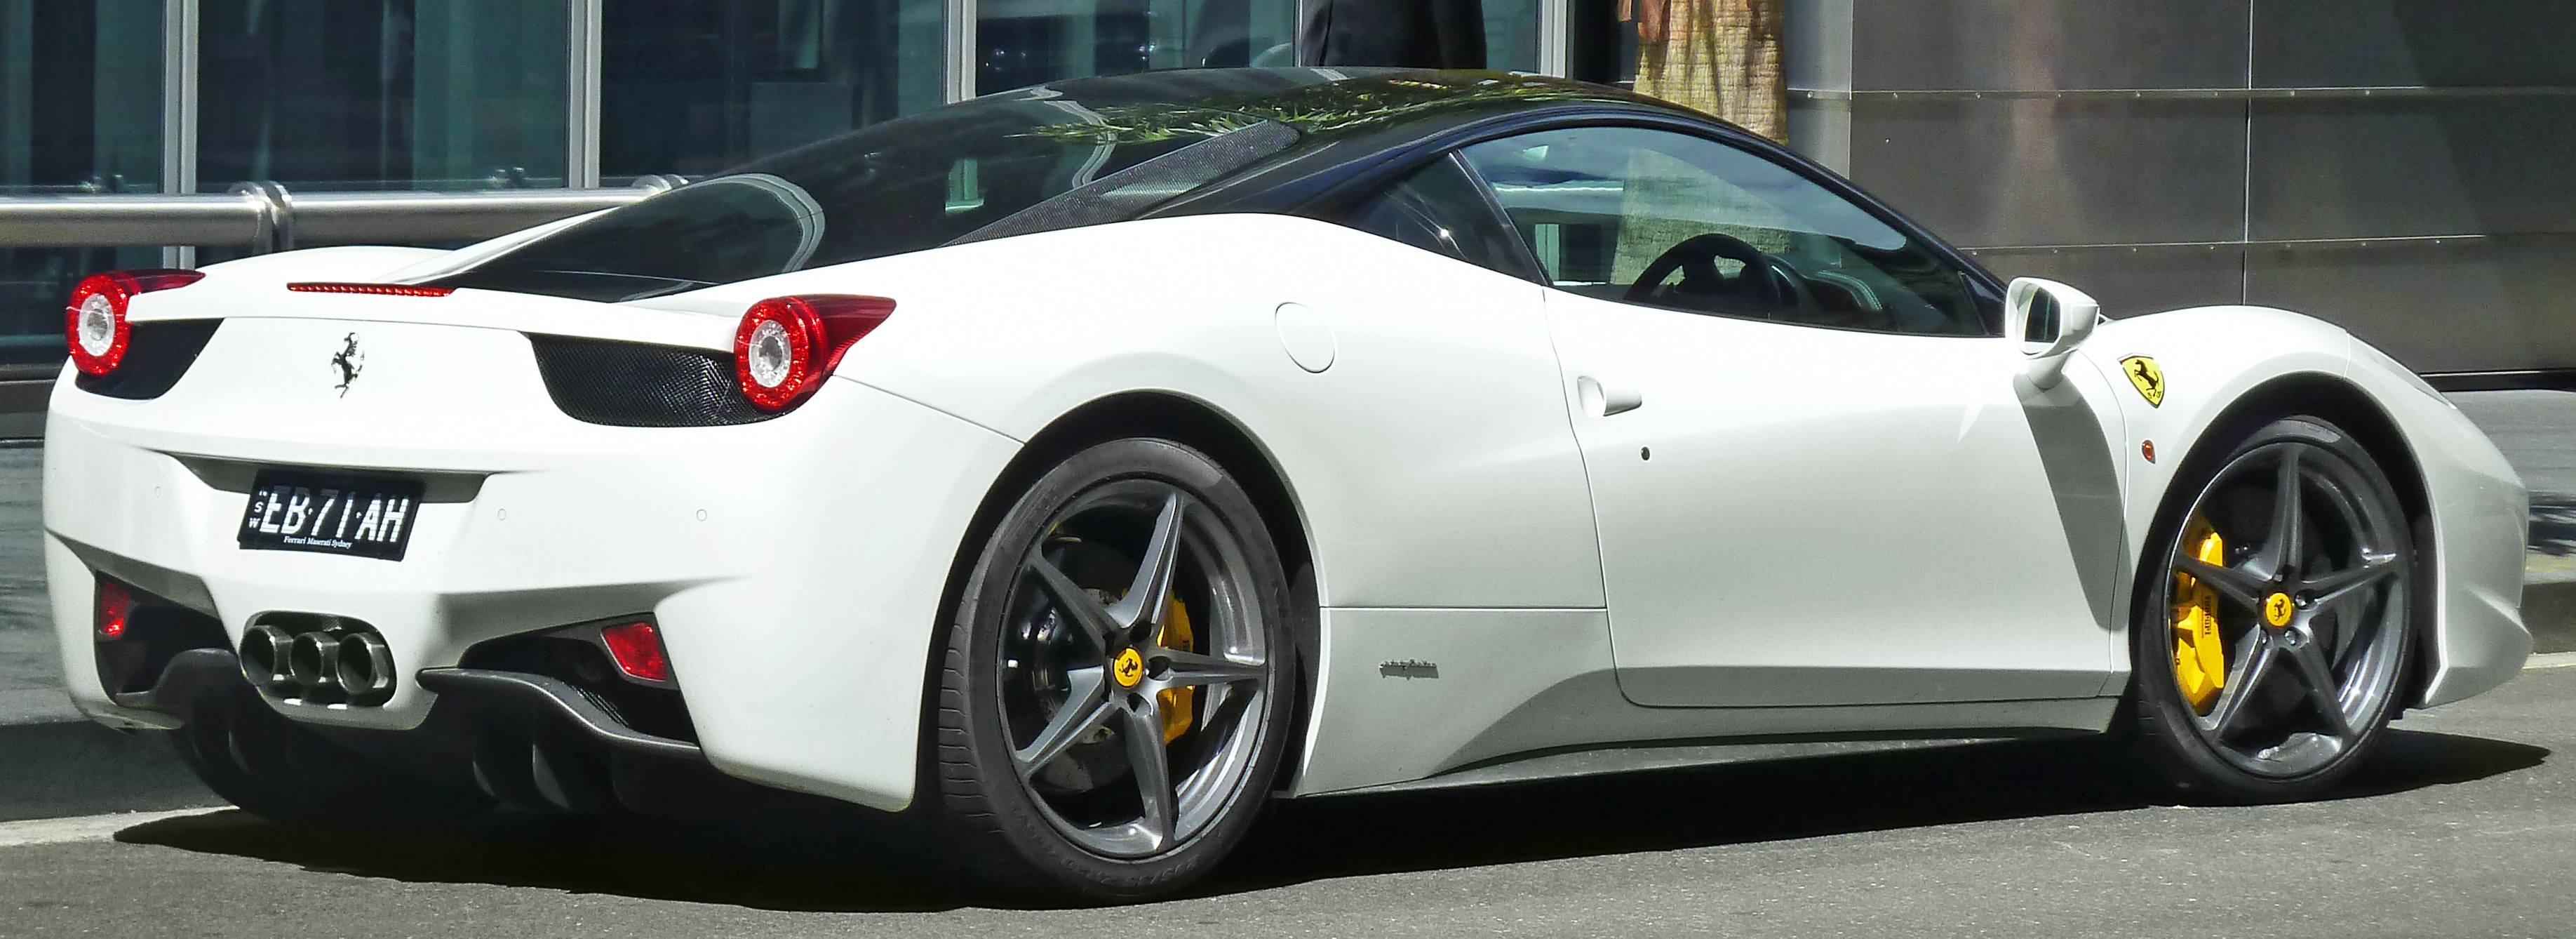 file:2010-2011 ferrari 458 italia coupe (2011-03-23) 03